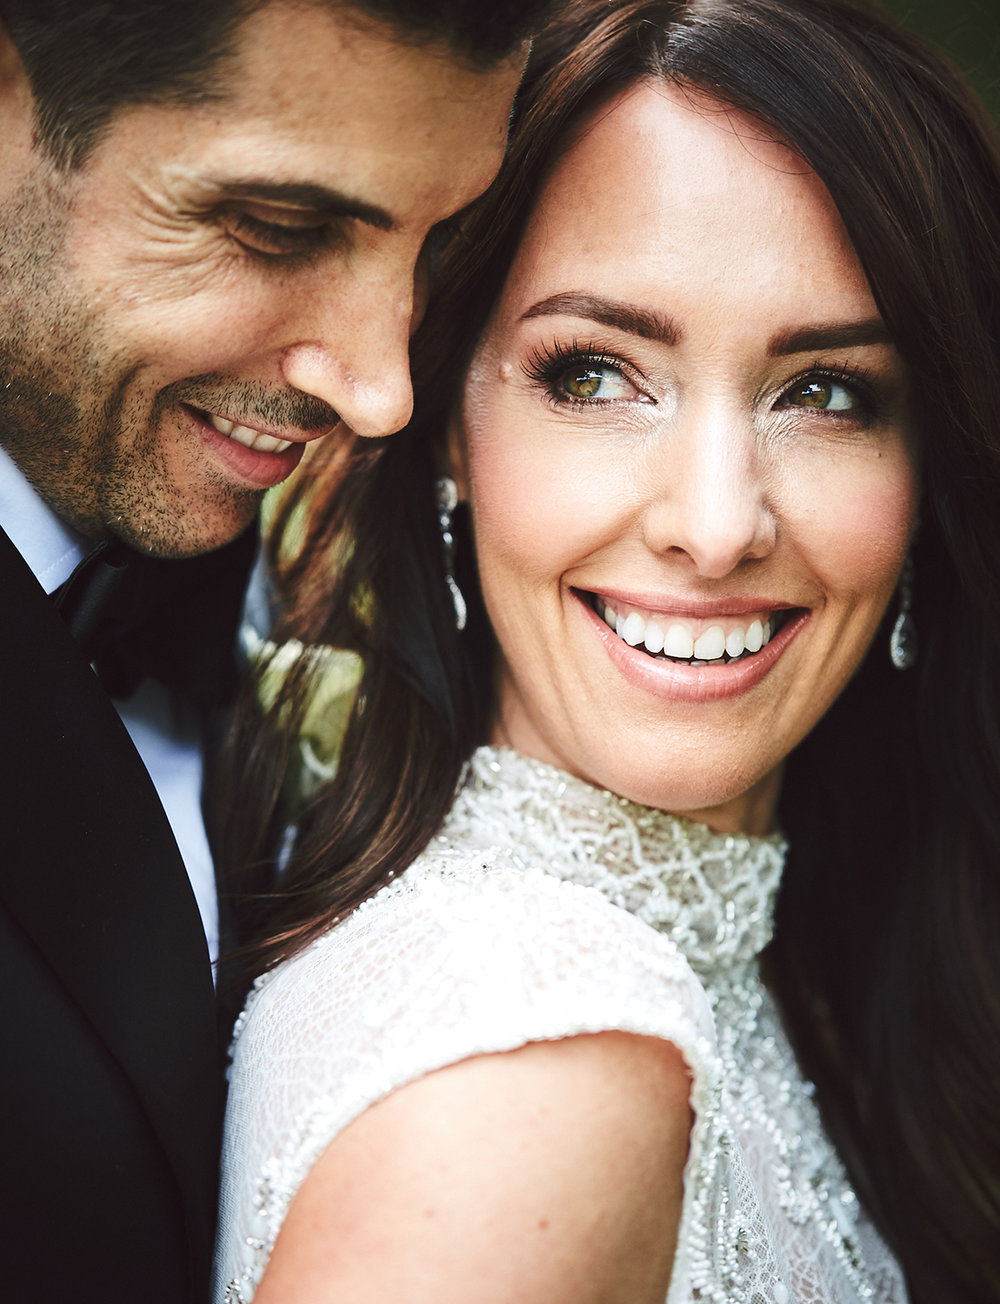 180622_BatteryGardensWeddingPhotography_NYCWeddingPhotographer_BriJohnsonWeddings_0069.jpg